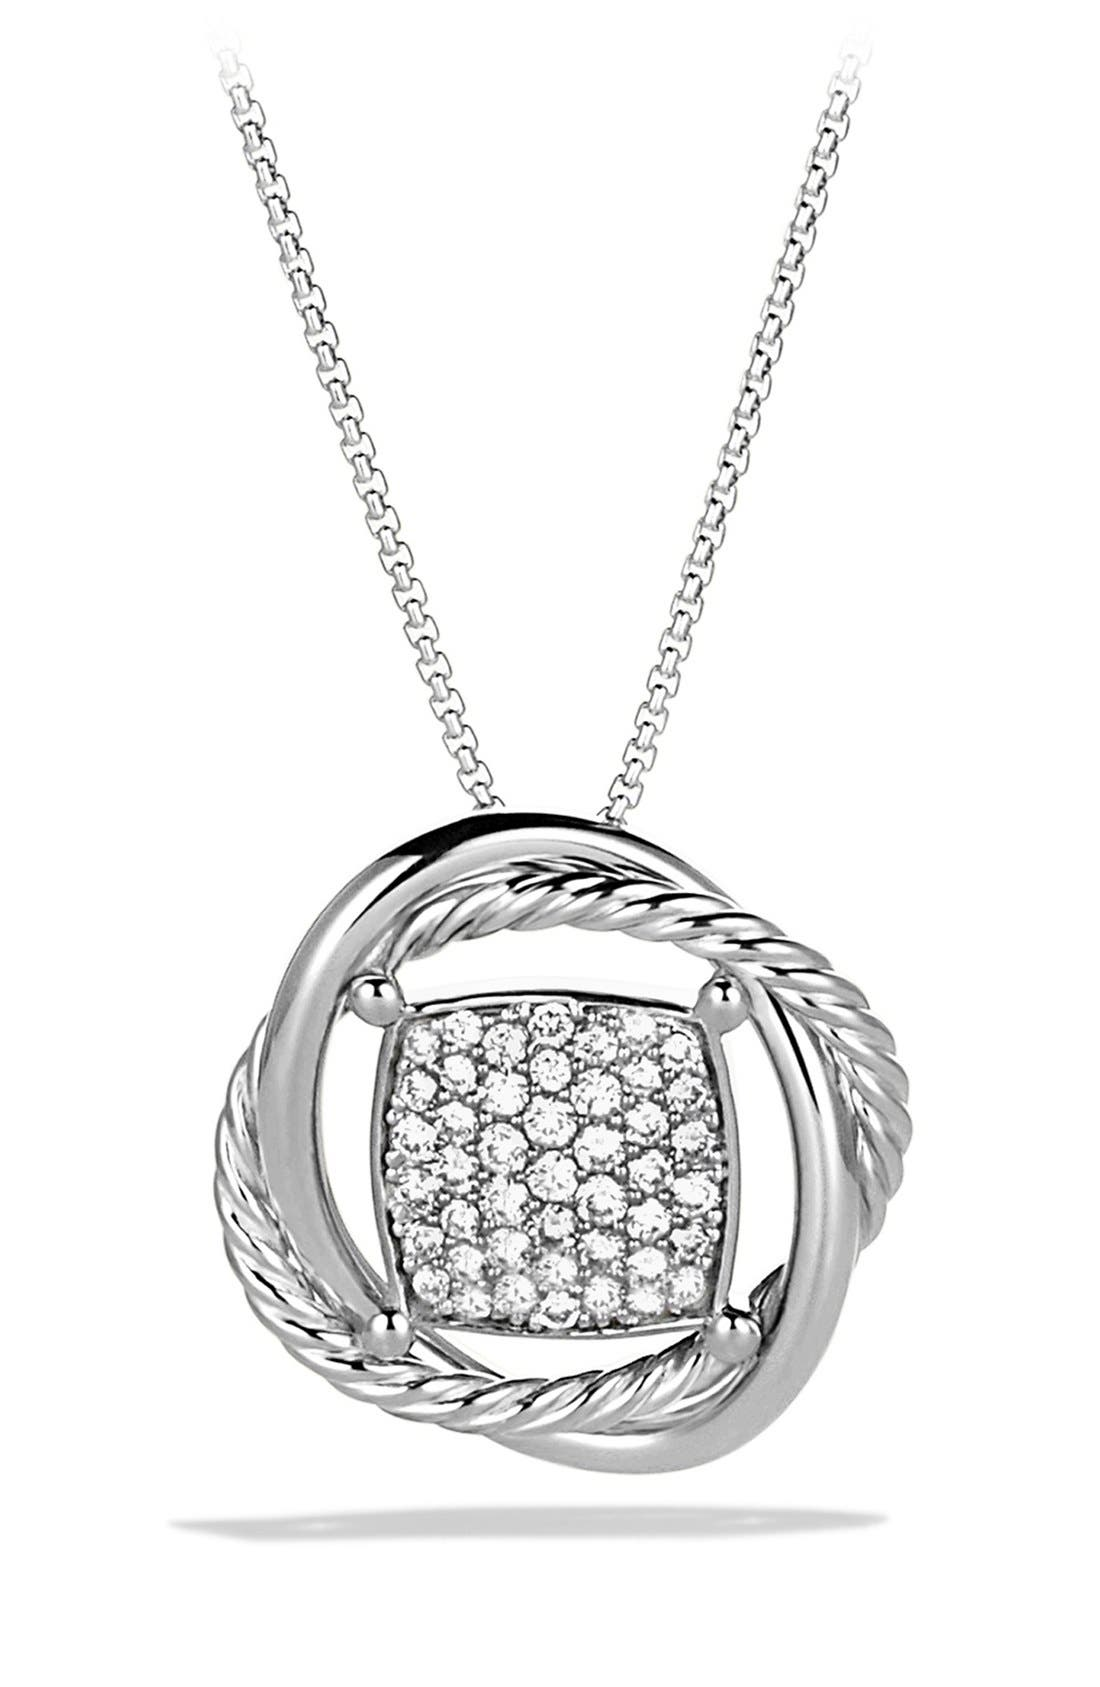 Alternate Image 1 Selected - David Yurman 'Infinity' Pendant with Diamonds on Chain